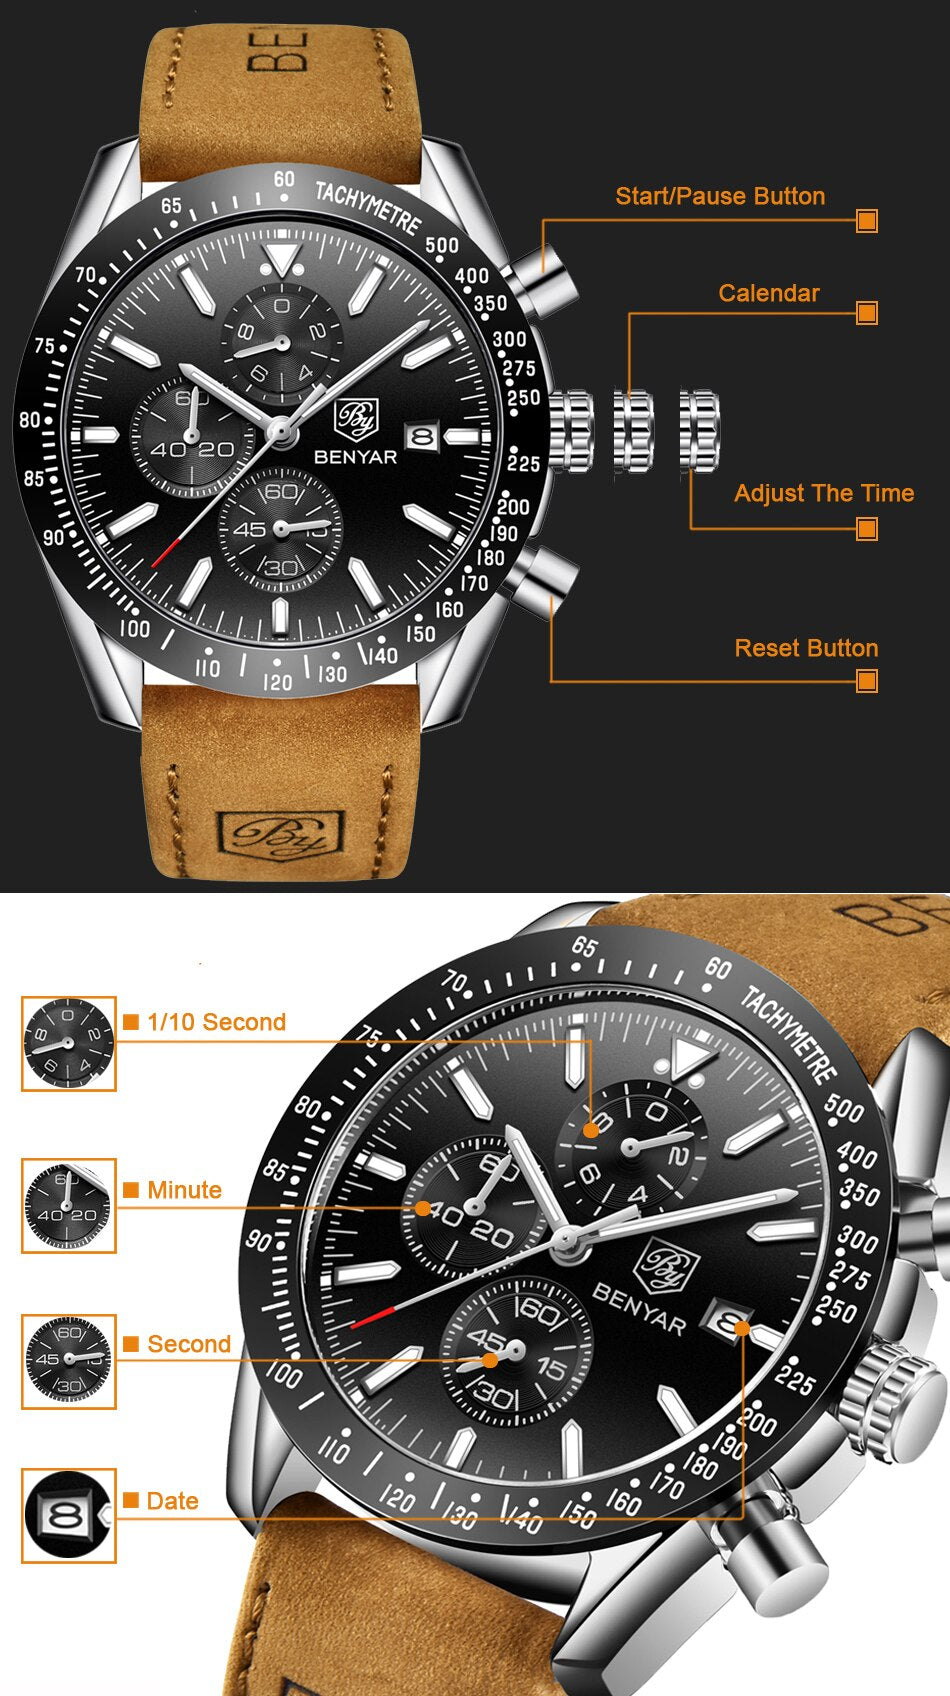 2019 Watch Men Luxury Brand BENYAR Mens Blue Watches Leather Band Wrist Watches Men's Chronograph Watch Male Relogio Masculino